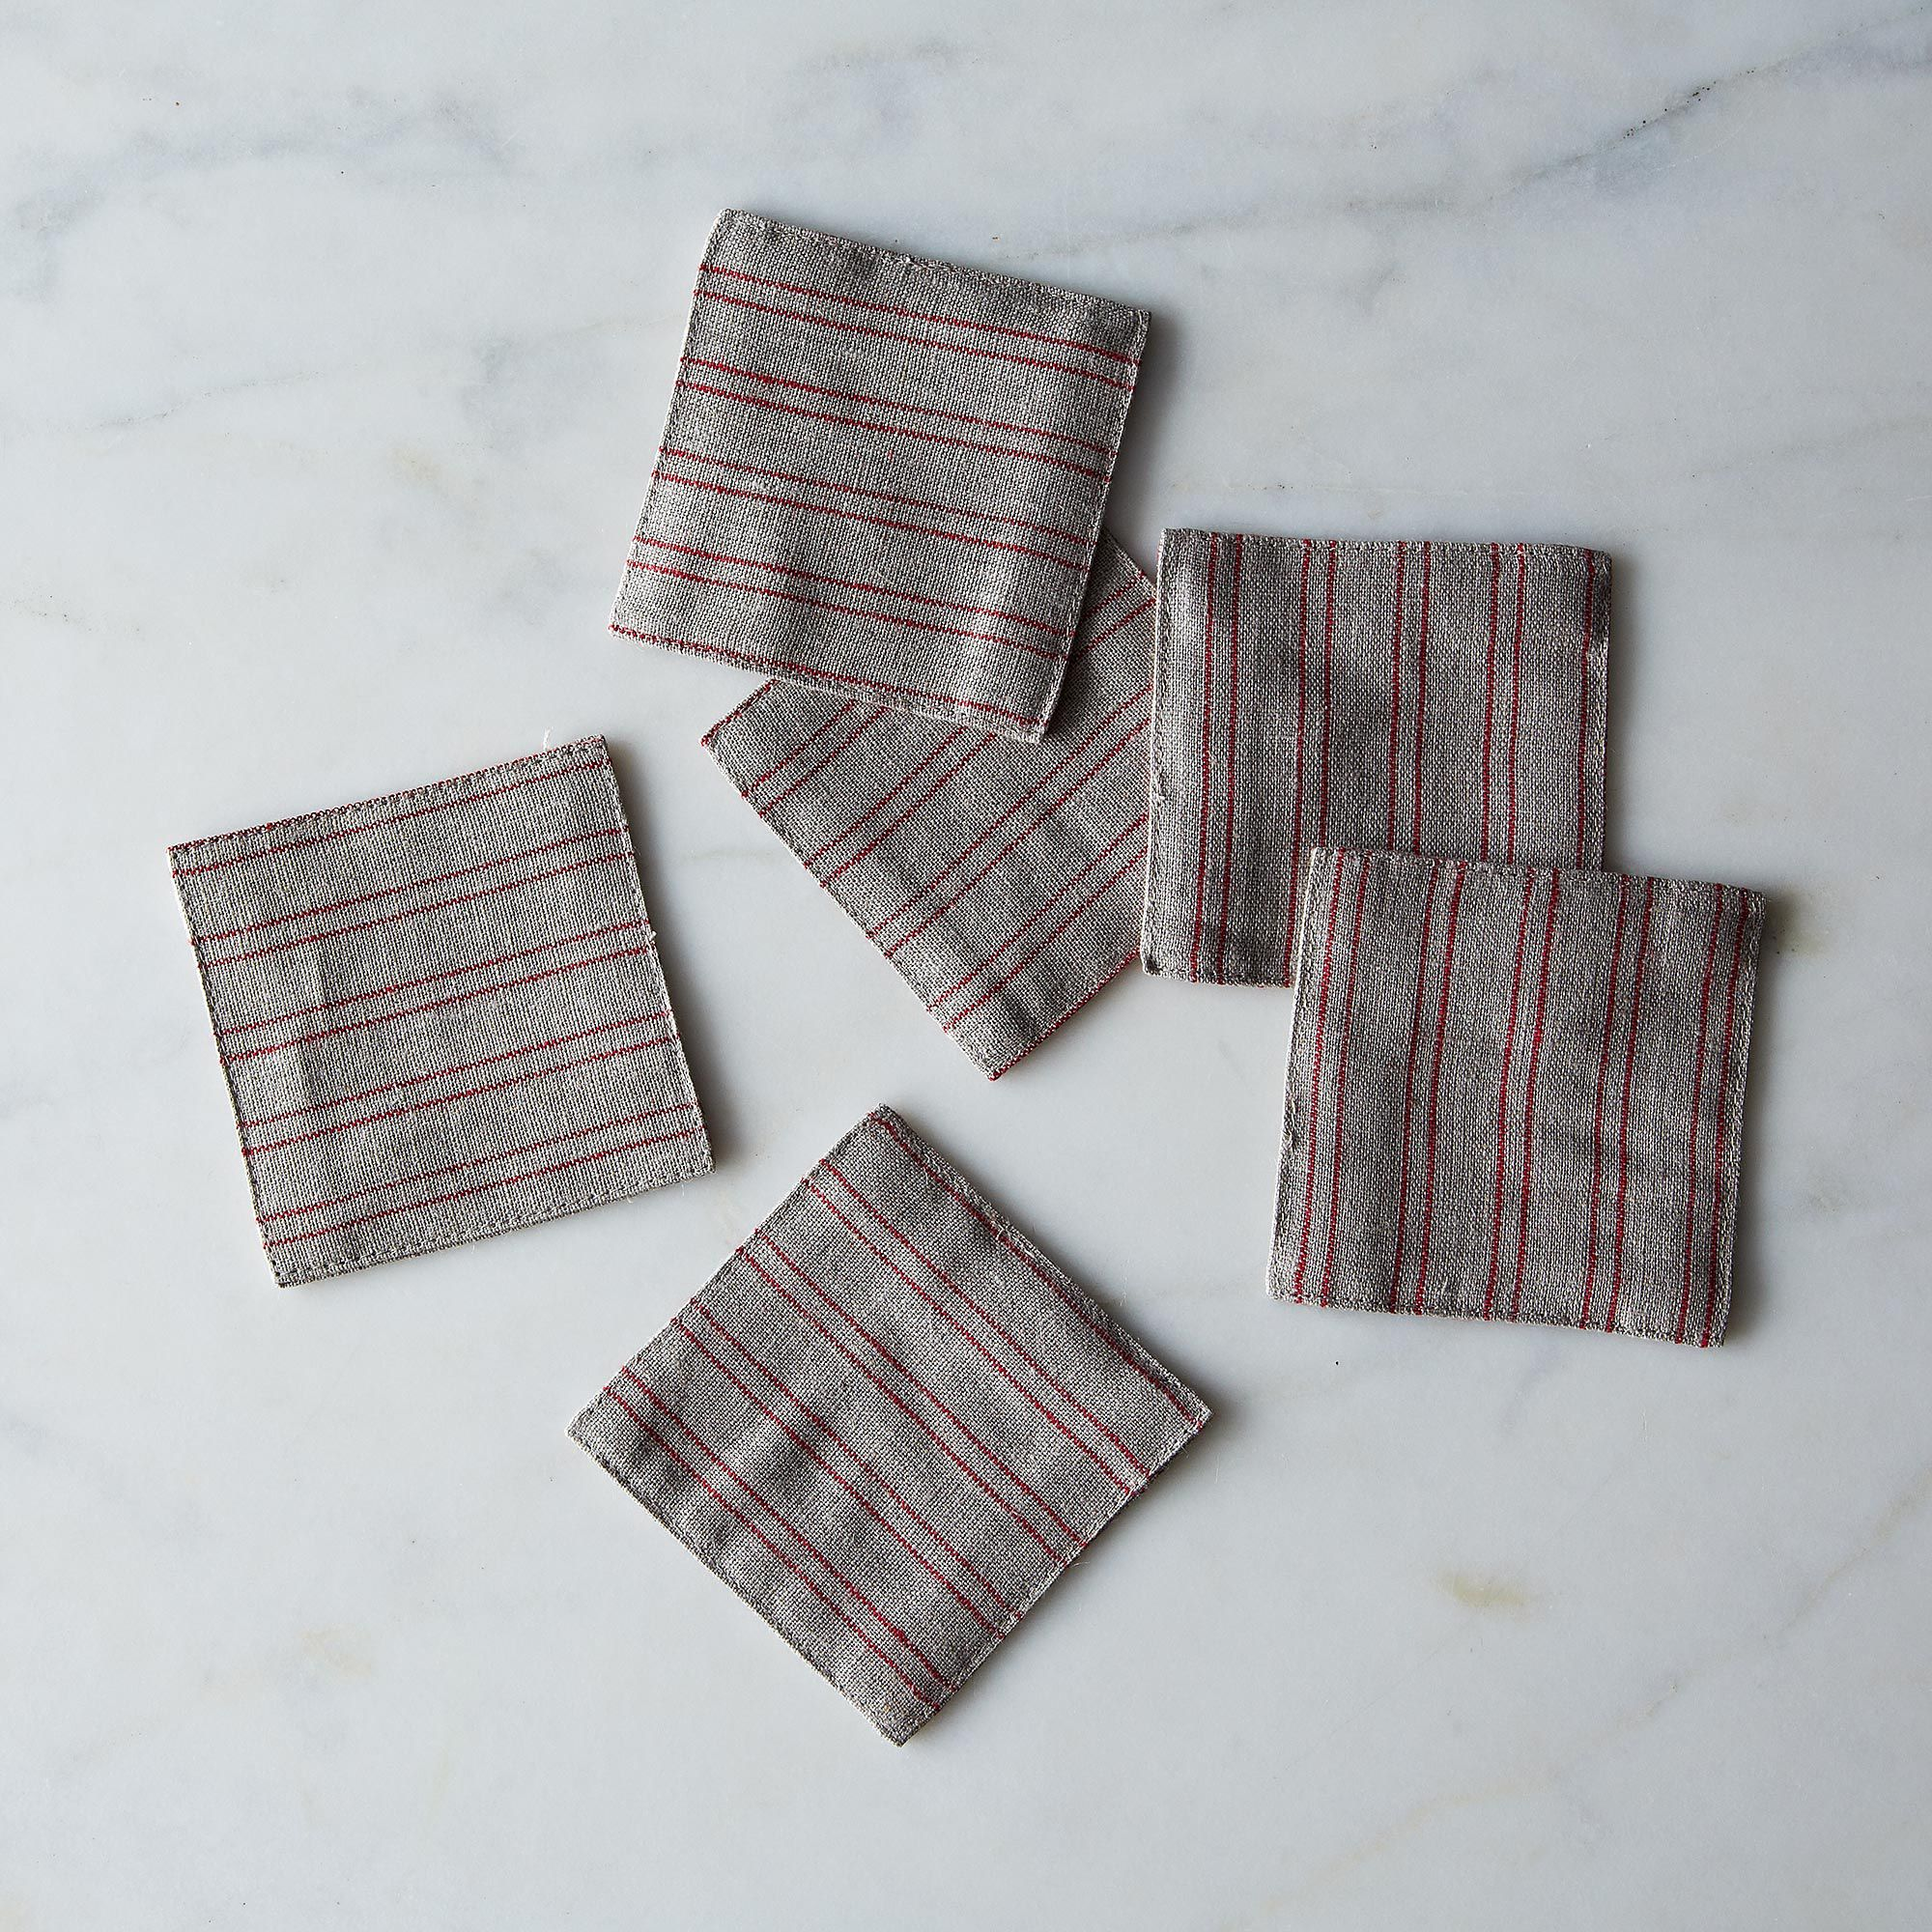 C53533ff-b5fc-49d9-b2e5-ee6b132cfb1c--2013-1204_shop-fog-linen_natural-red-stripe-coasters-011